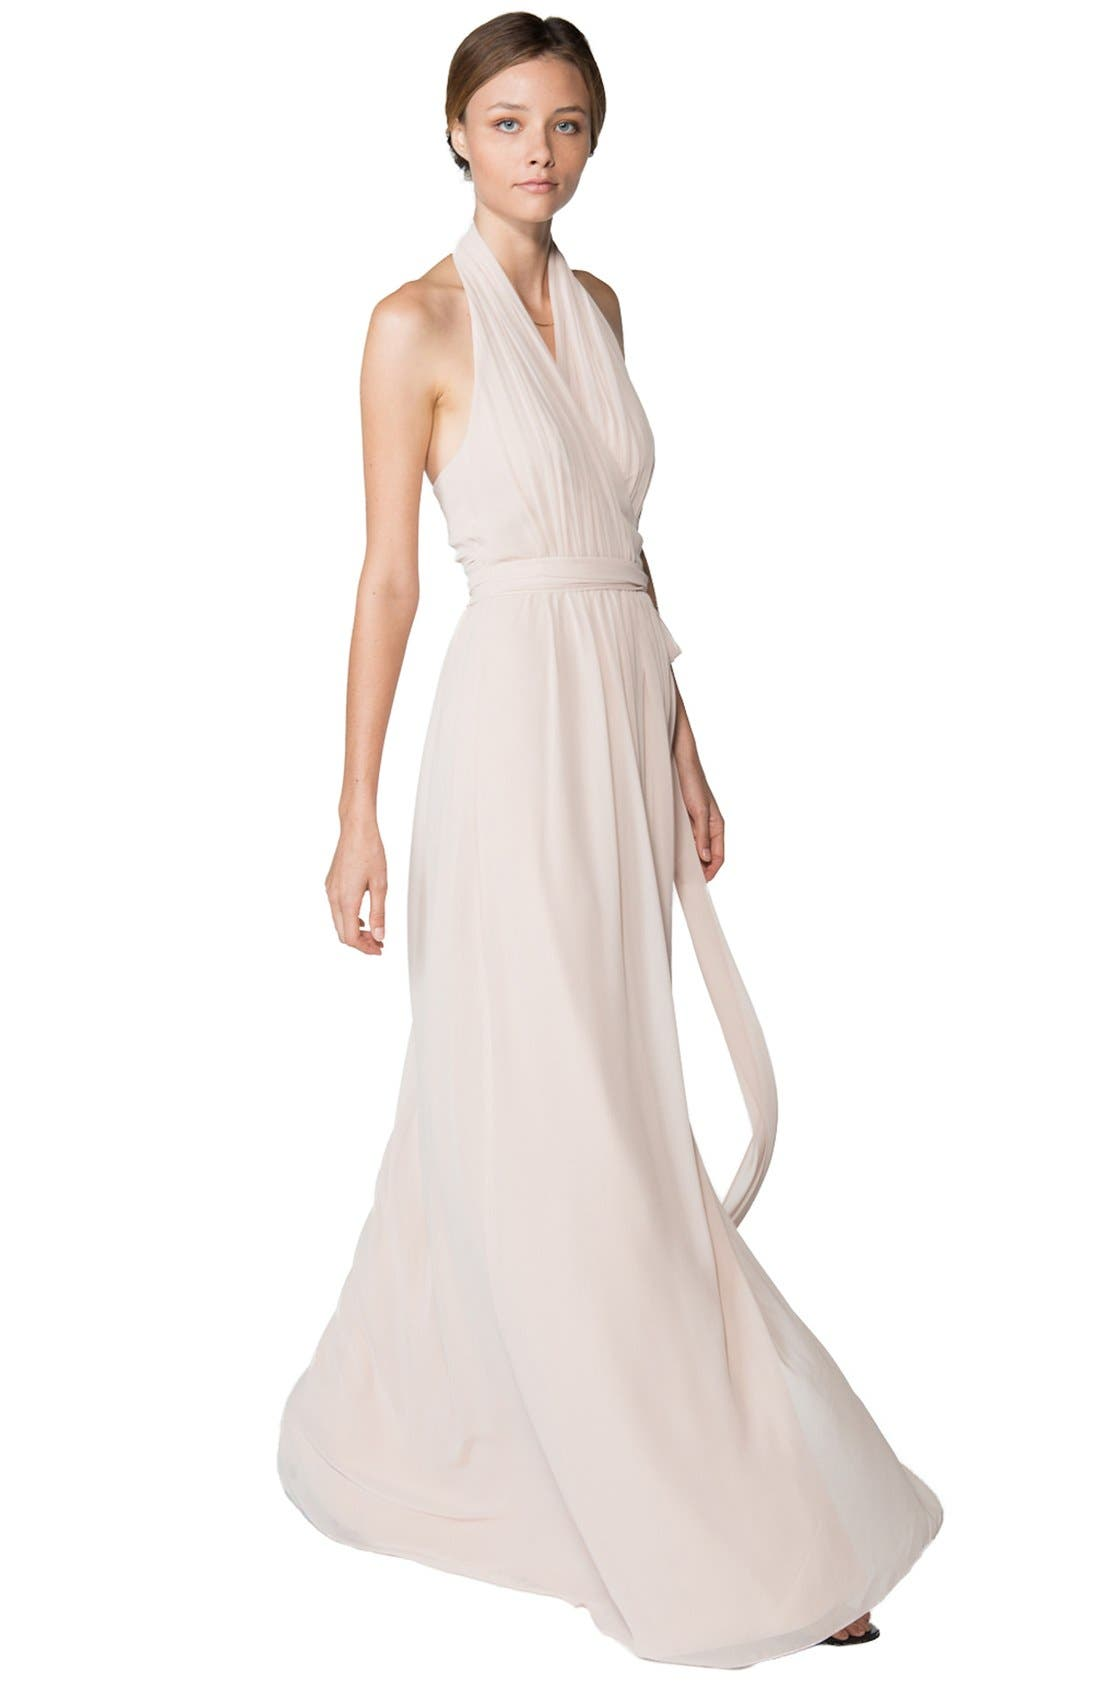 Alternate Image 1 Selected - Ceremony by Joanna August 'Amber' Side Tie Chiffon Halter Gown